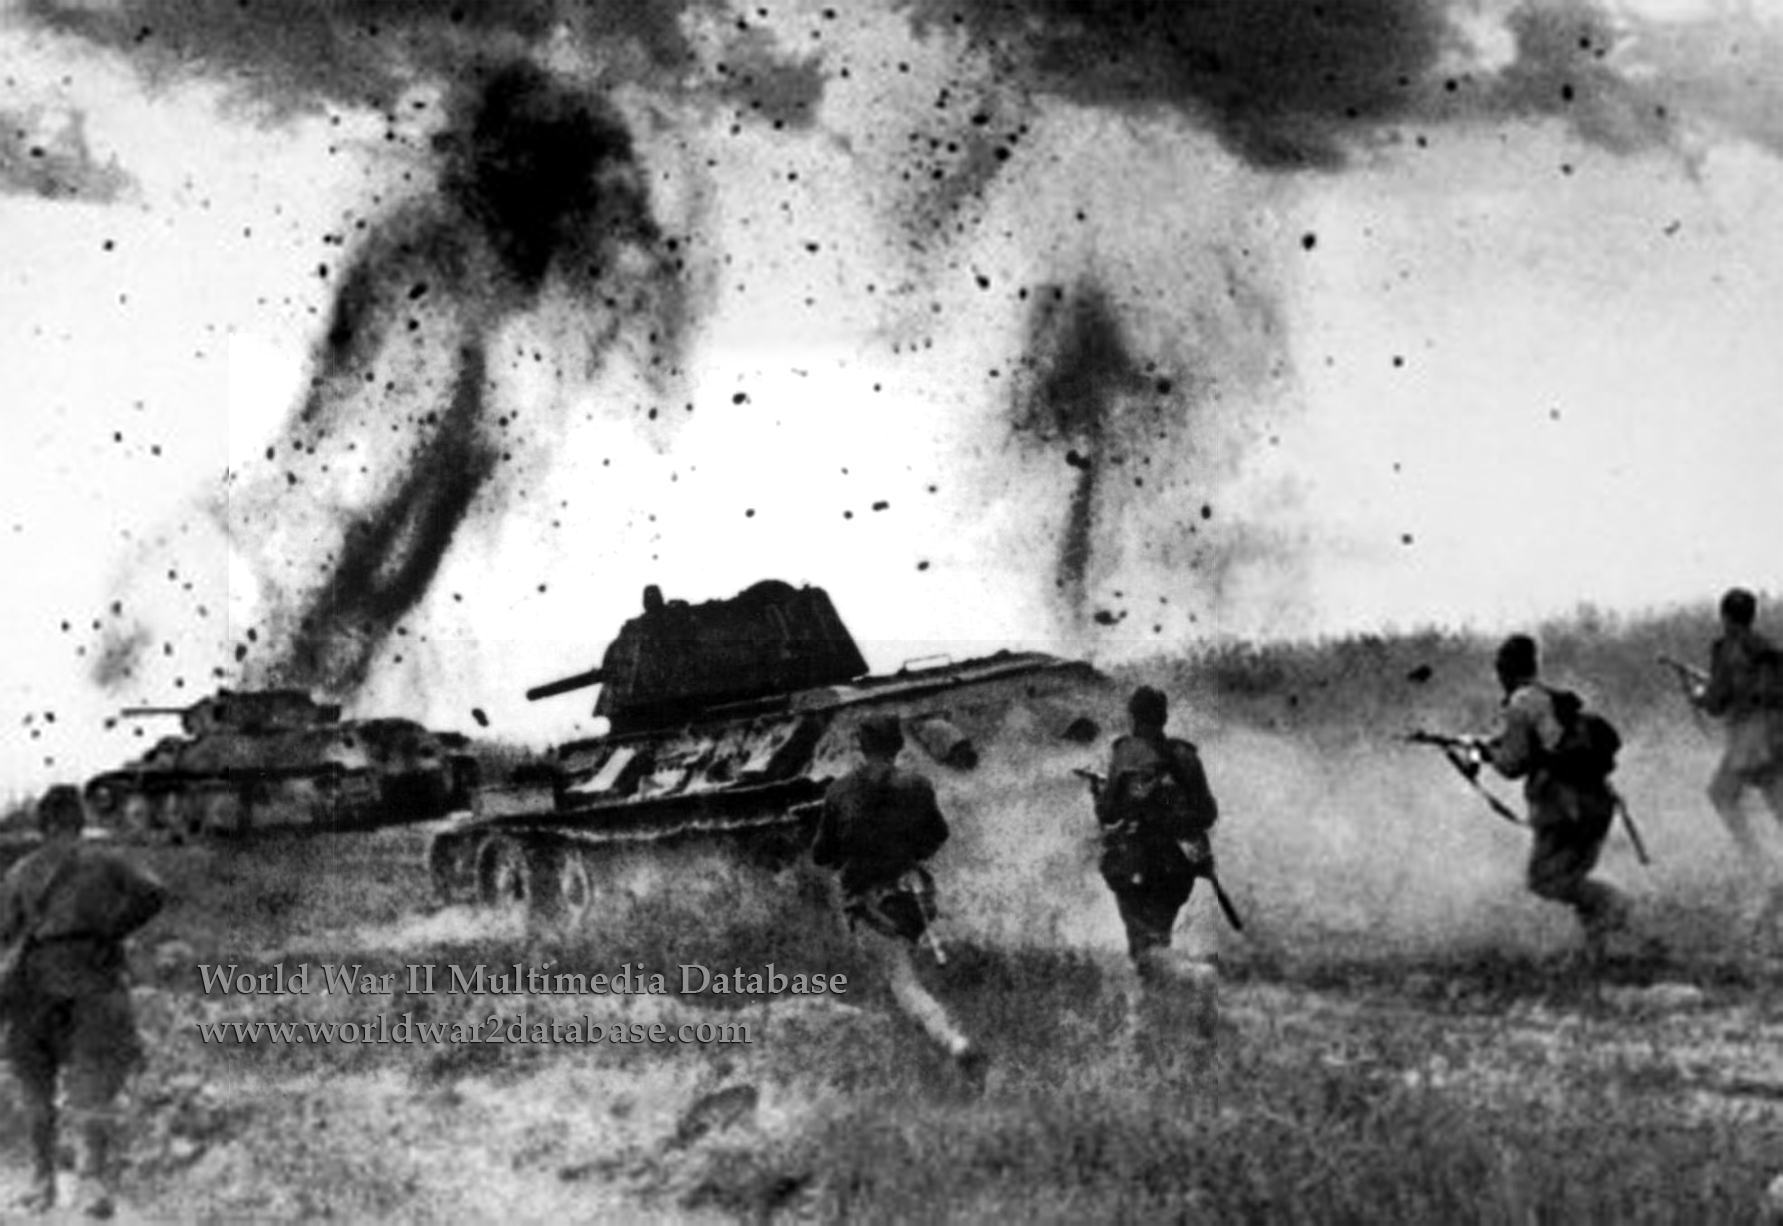 WWII Prokhorovka Tank-Battle Photo